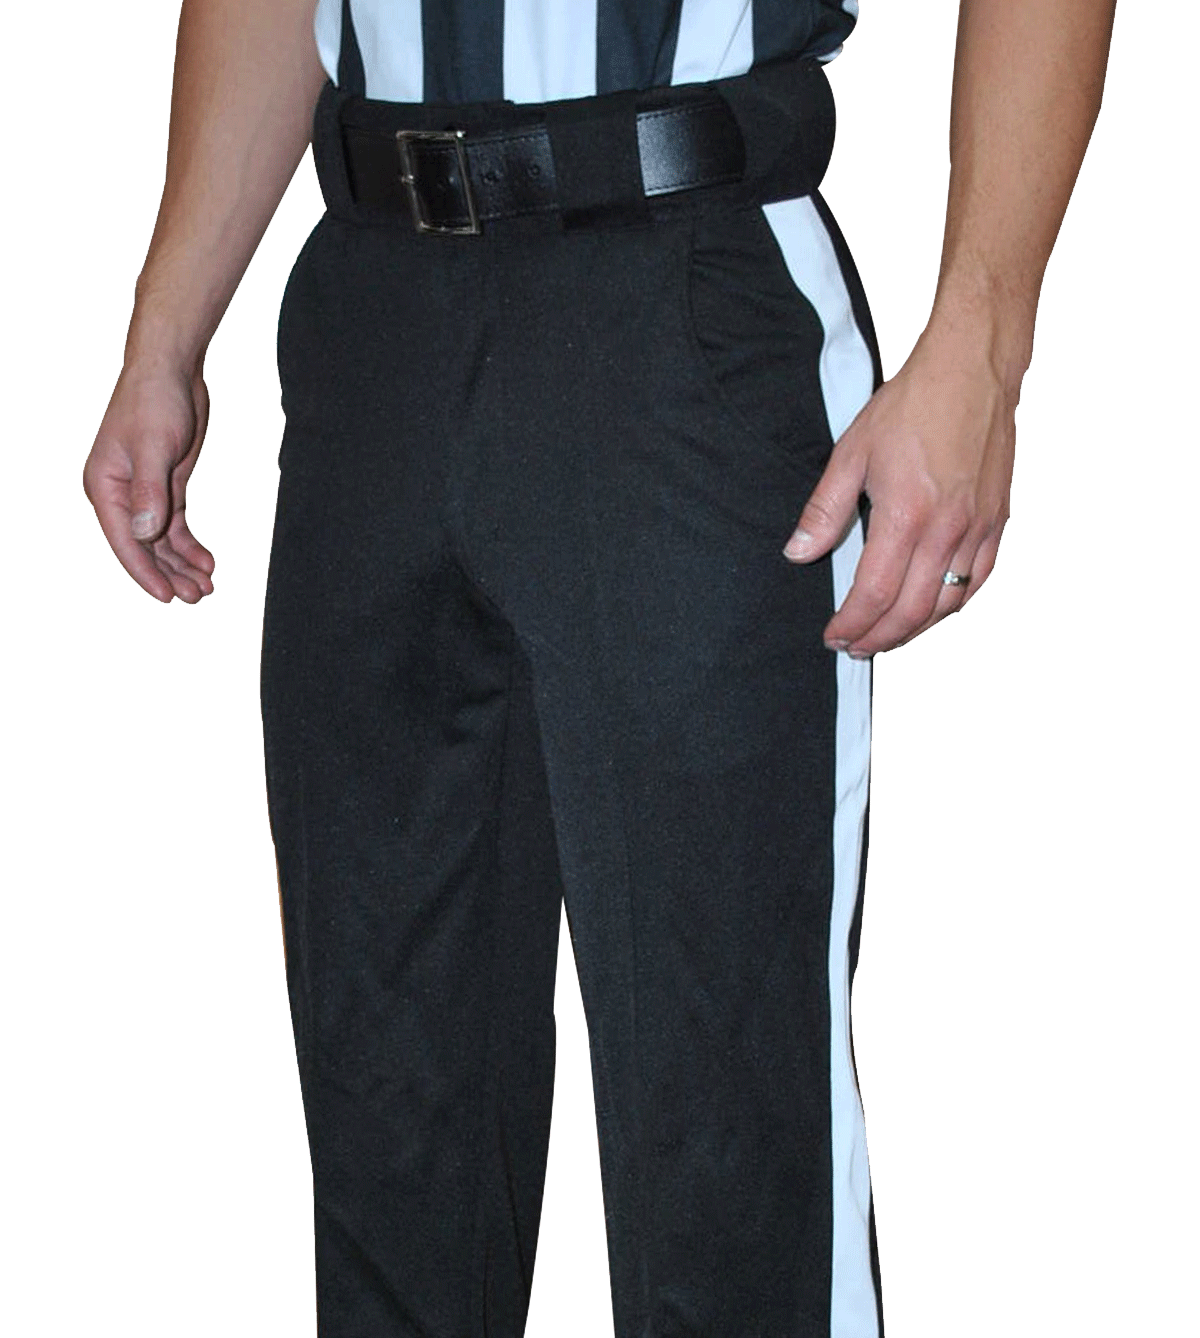 SMITTY Black Warm Weather Officials Pant